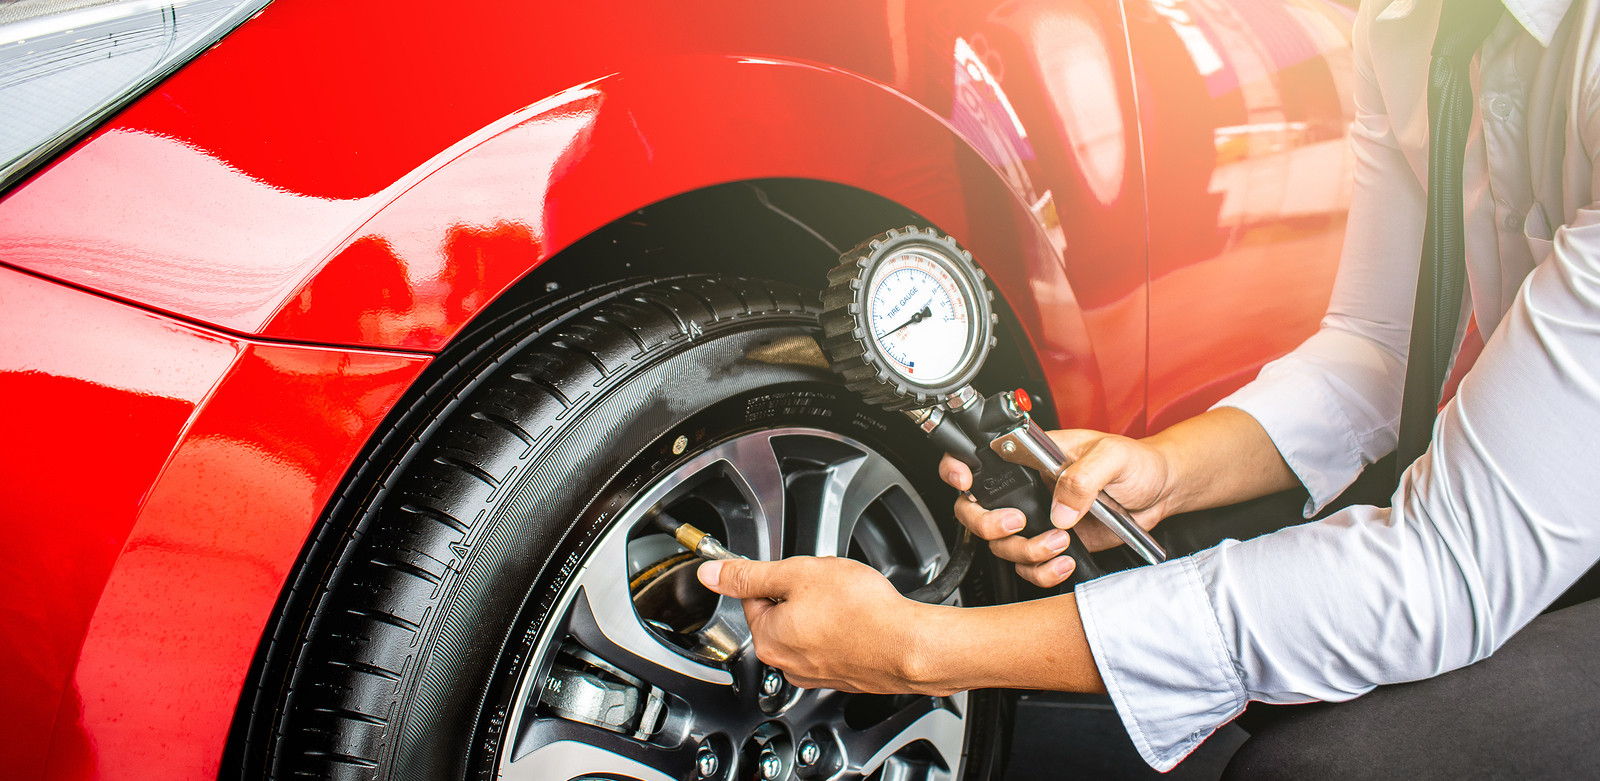 Man in long shirt sleeves checking tyre of red car with pressure gauge.